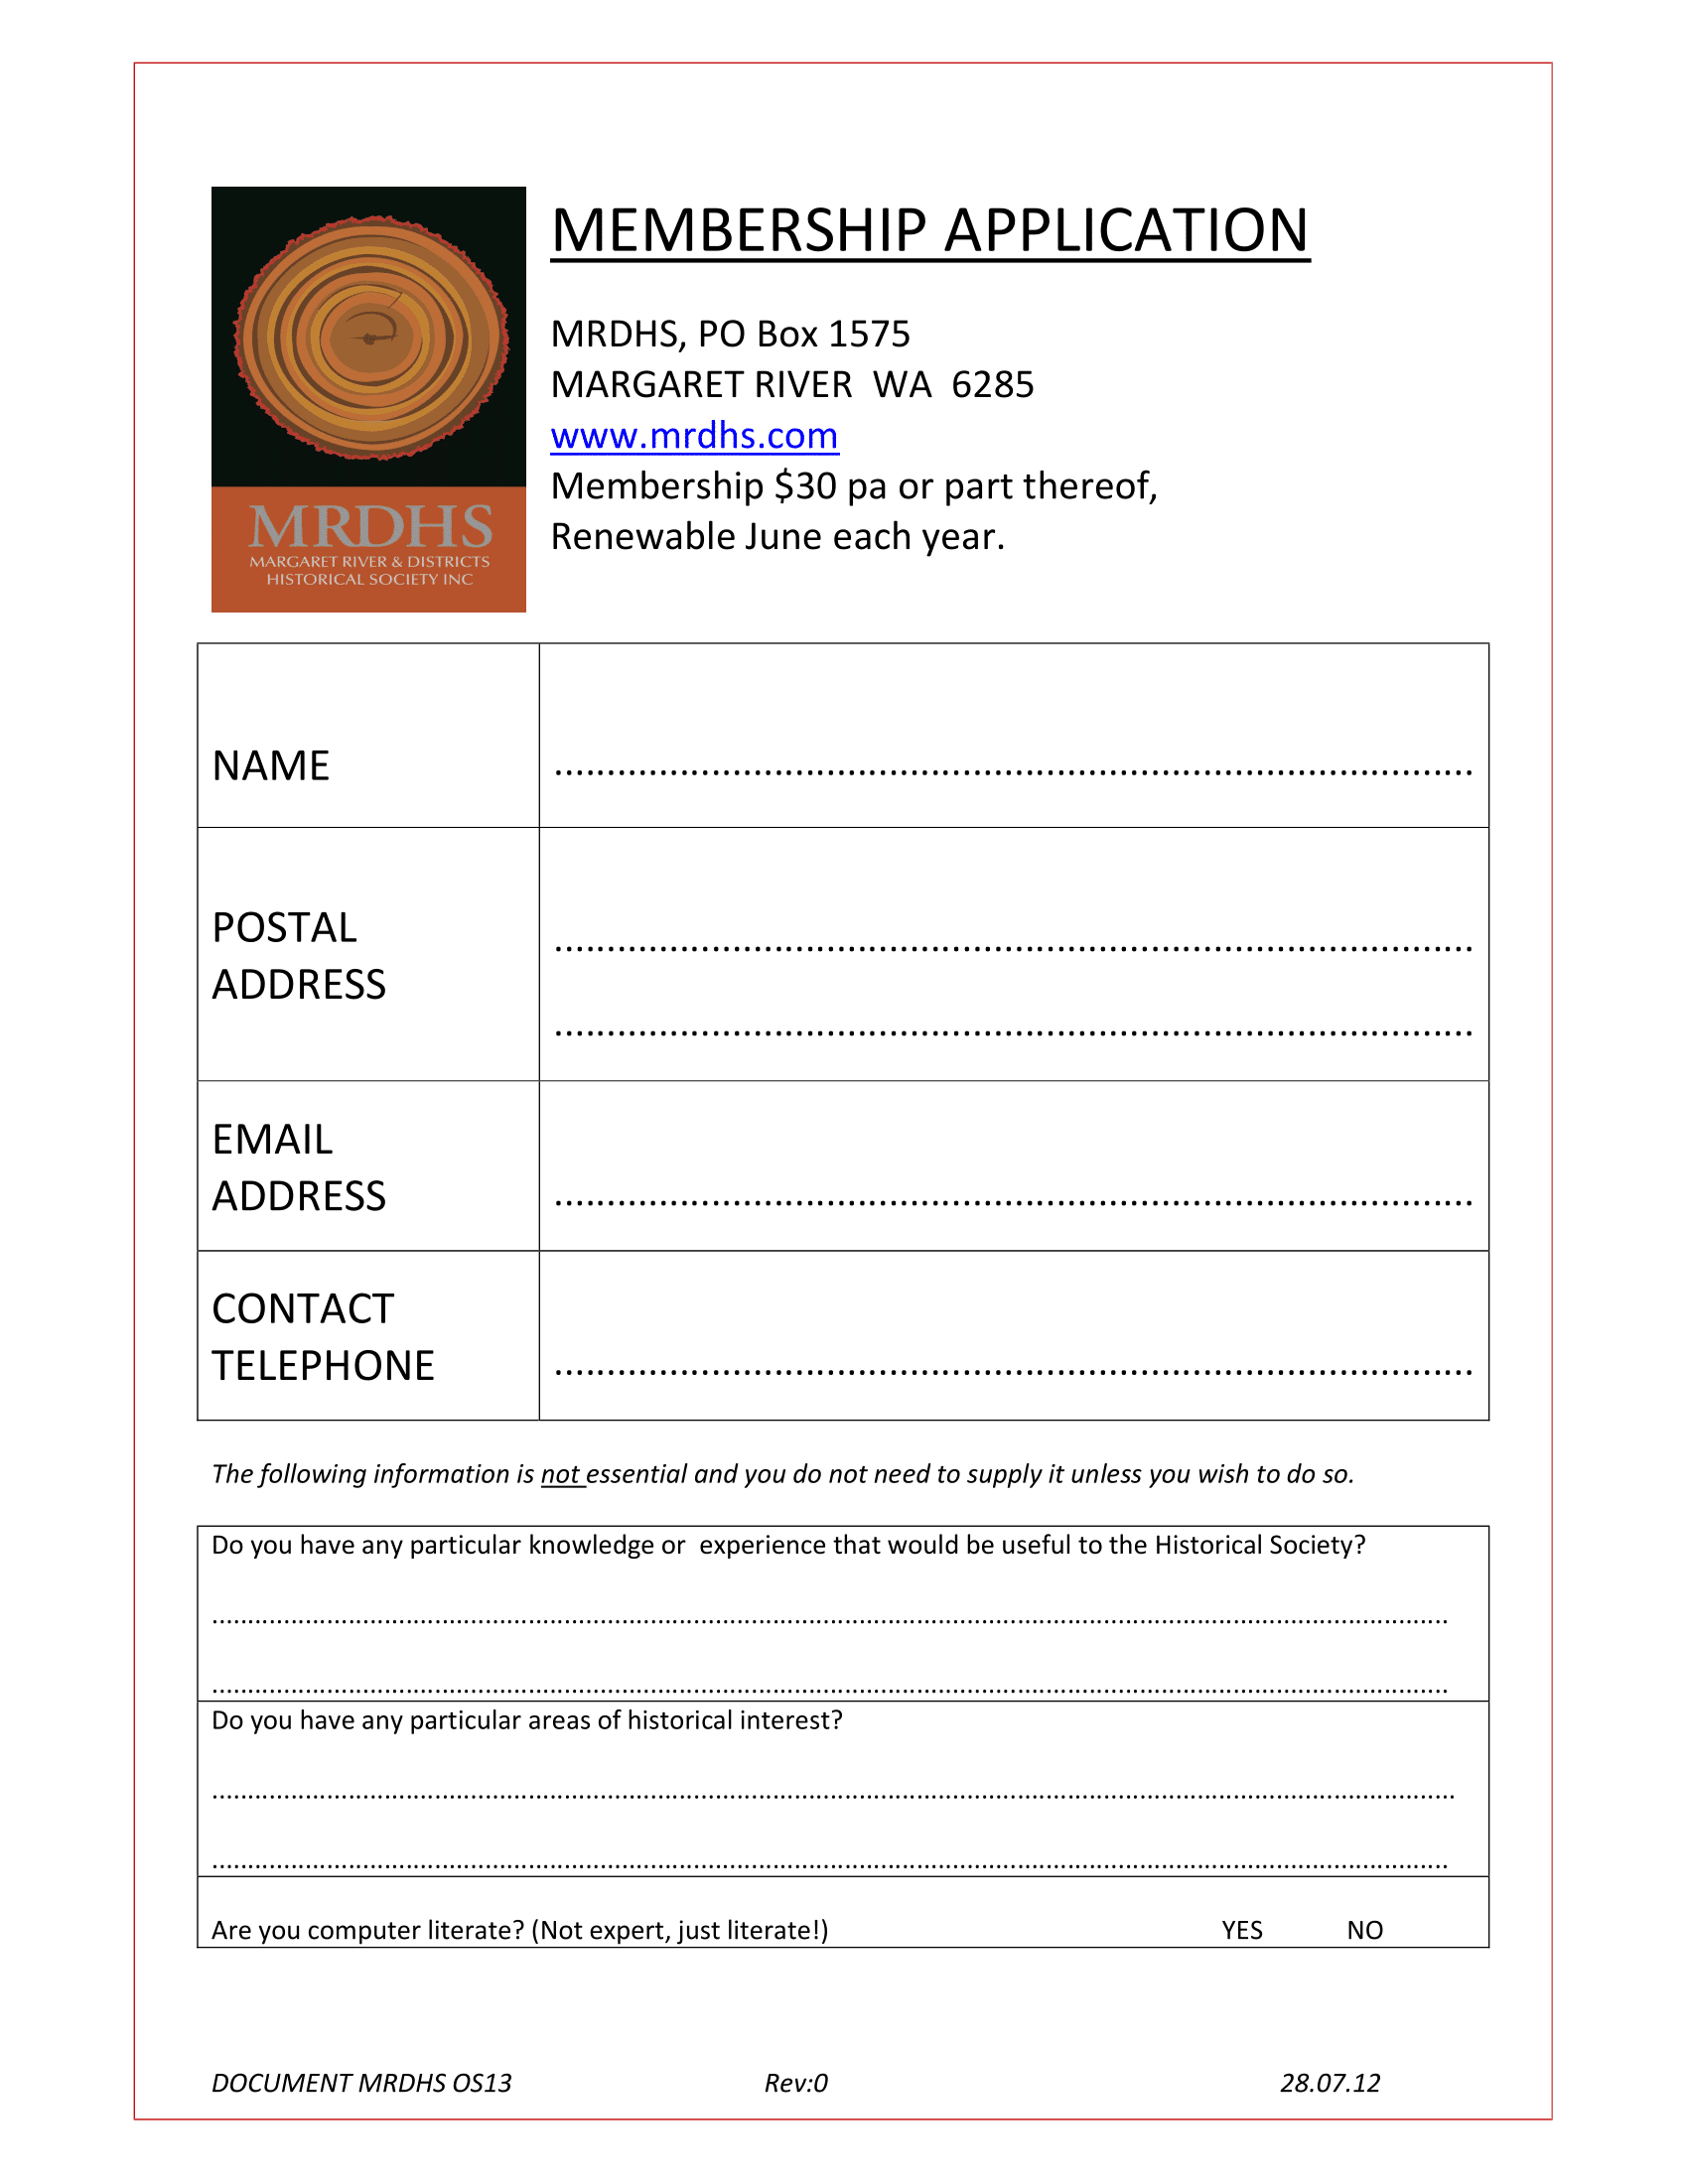 Open membership application form